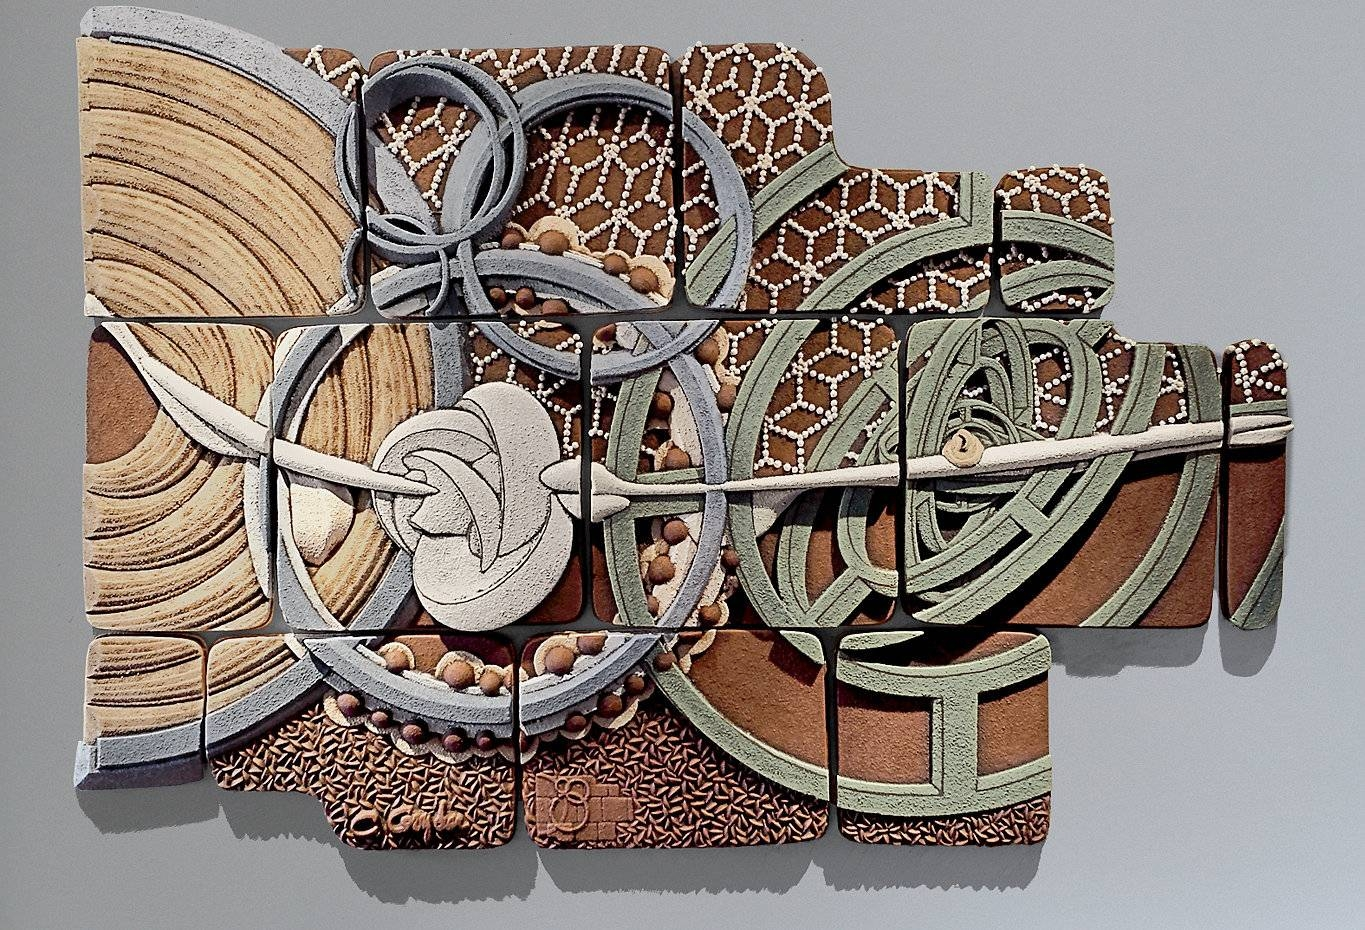 Outdoor Wall Decor Ceramic | Trellischicago Throughout Most Up To Date Outdoor Wall Sculpture Art (View 13 of 20)